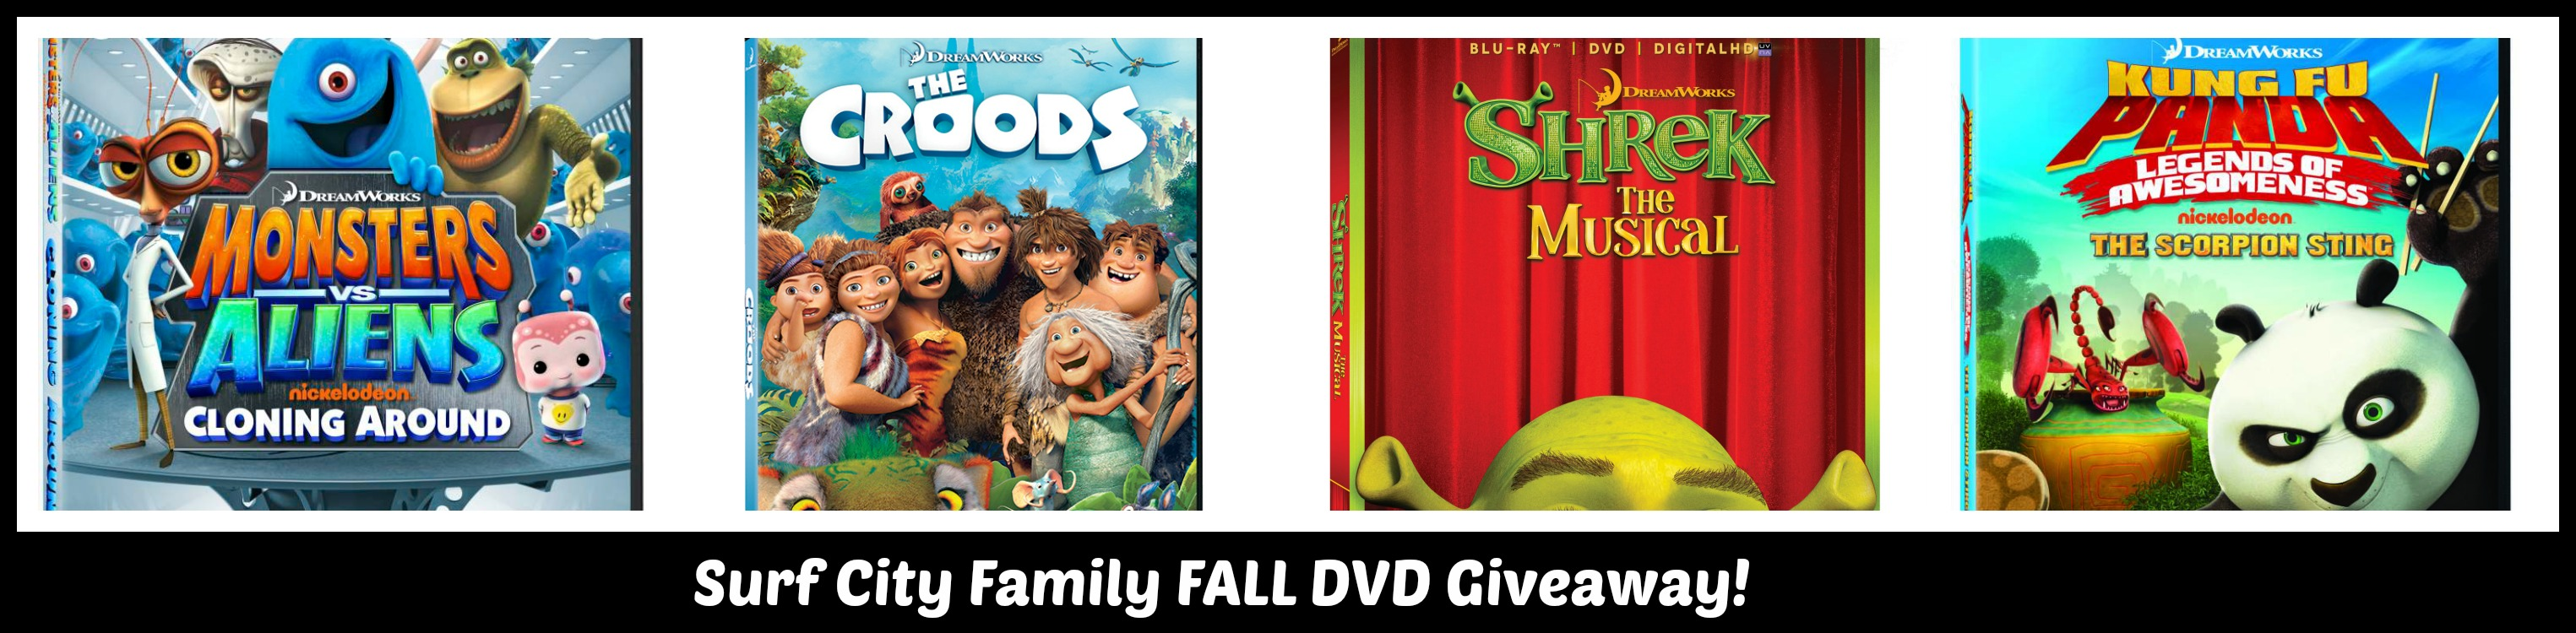 Fall DVD Giveaway: Win Shrek the Musical, The Croods, Kung Fu Panda or Monsters vs. Aliens